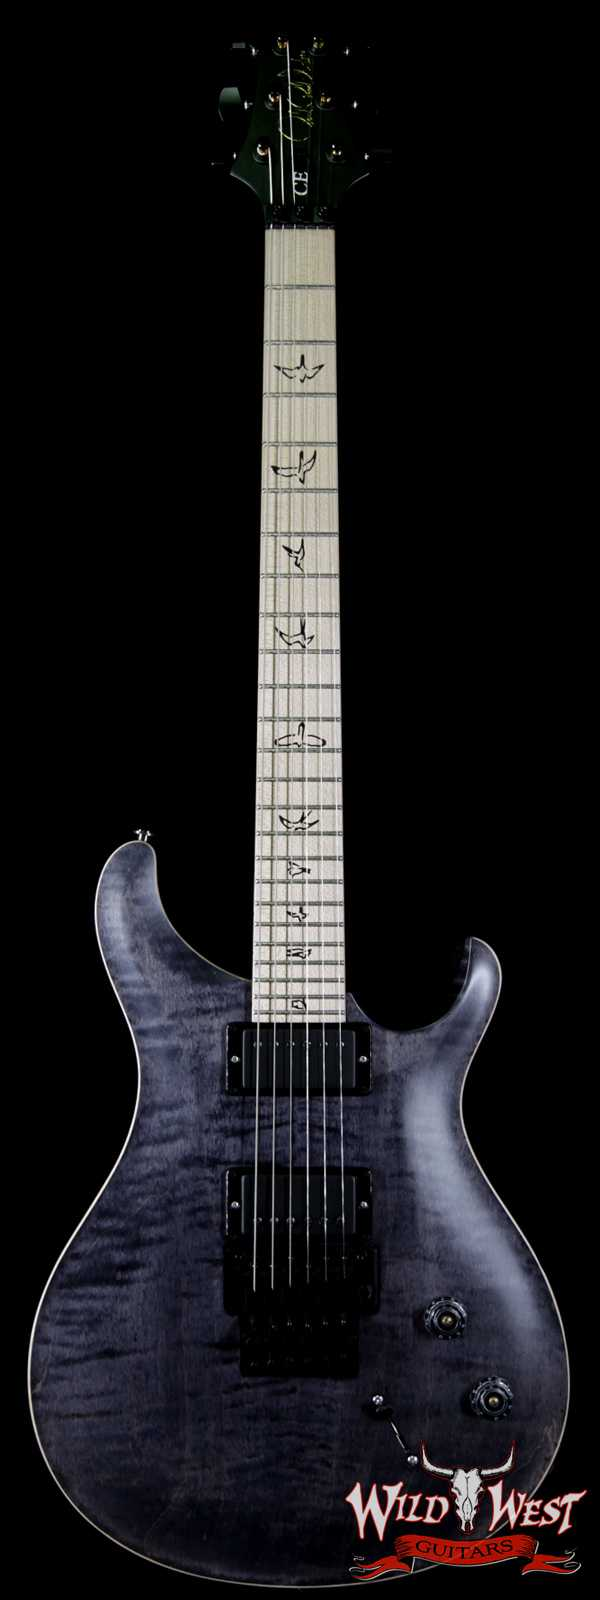 Paul Reed Smith PRS Limited Edition Dustie Waring Signature DW CE 24 Floyd Gray Black